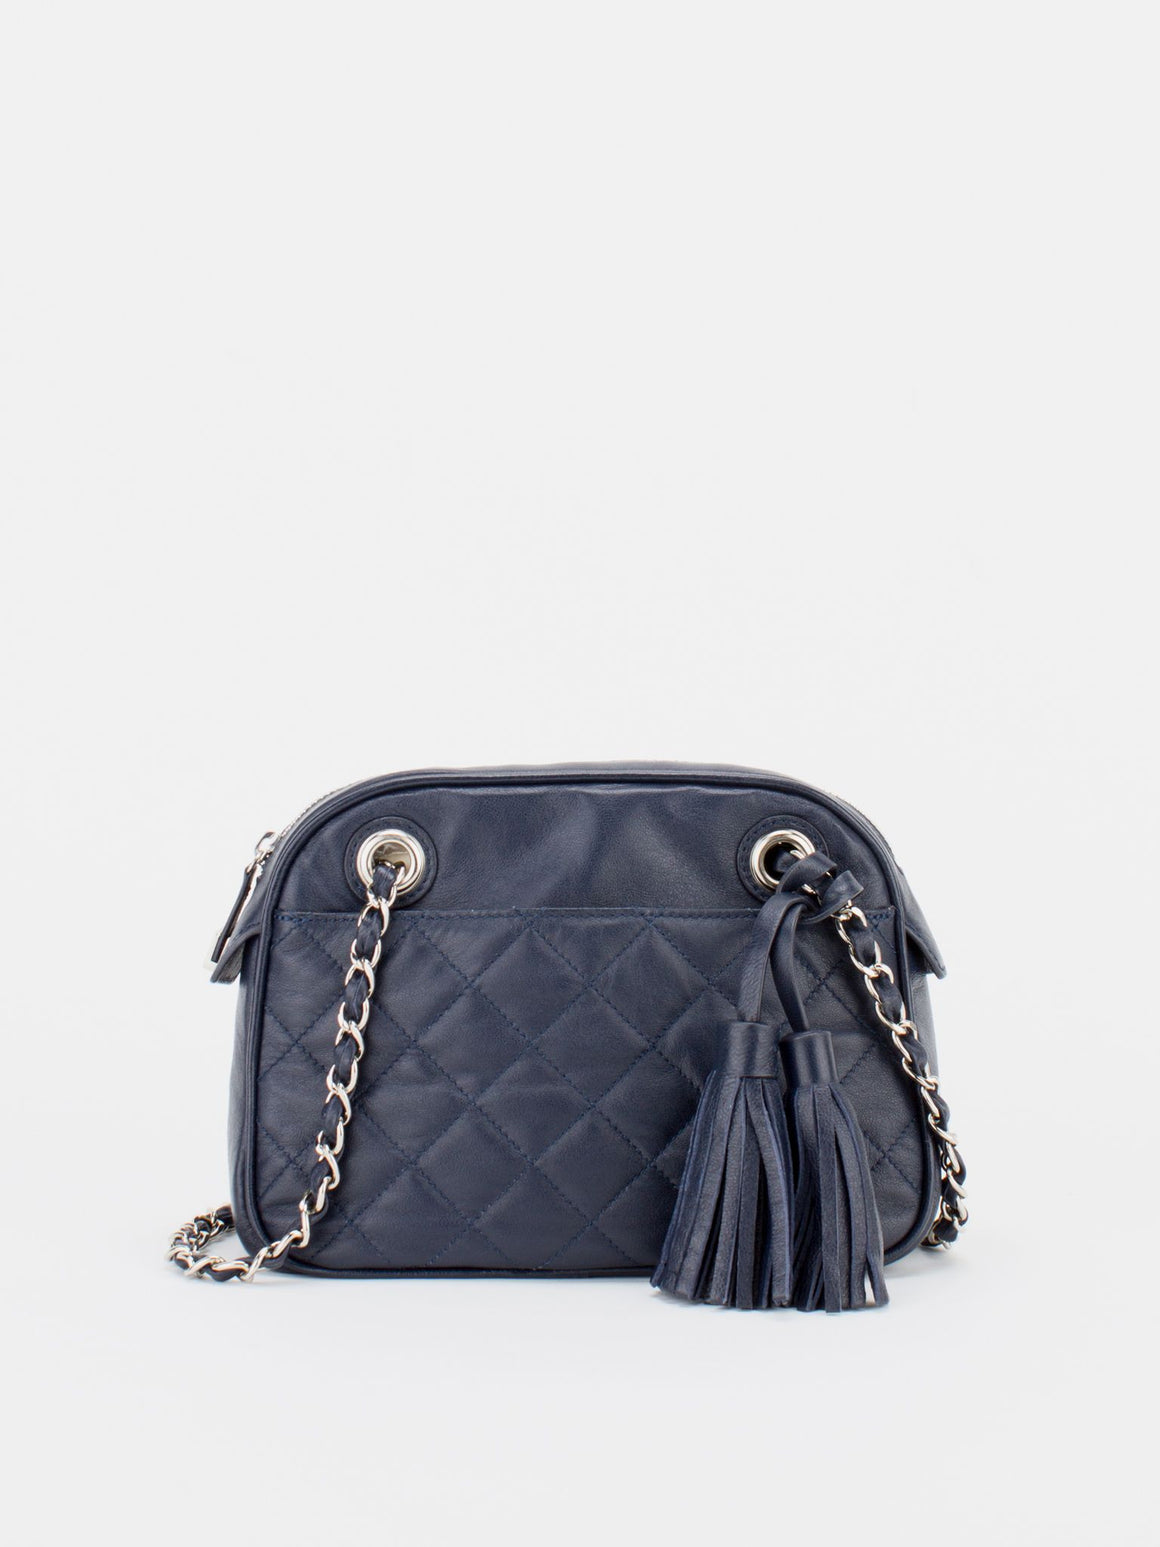 LAURIE Quilted Leather Chain Bag - Navy